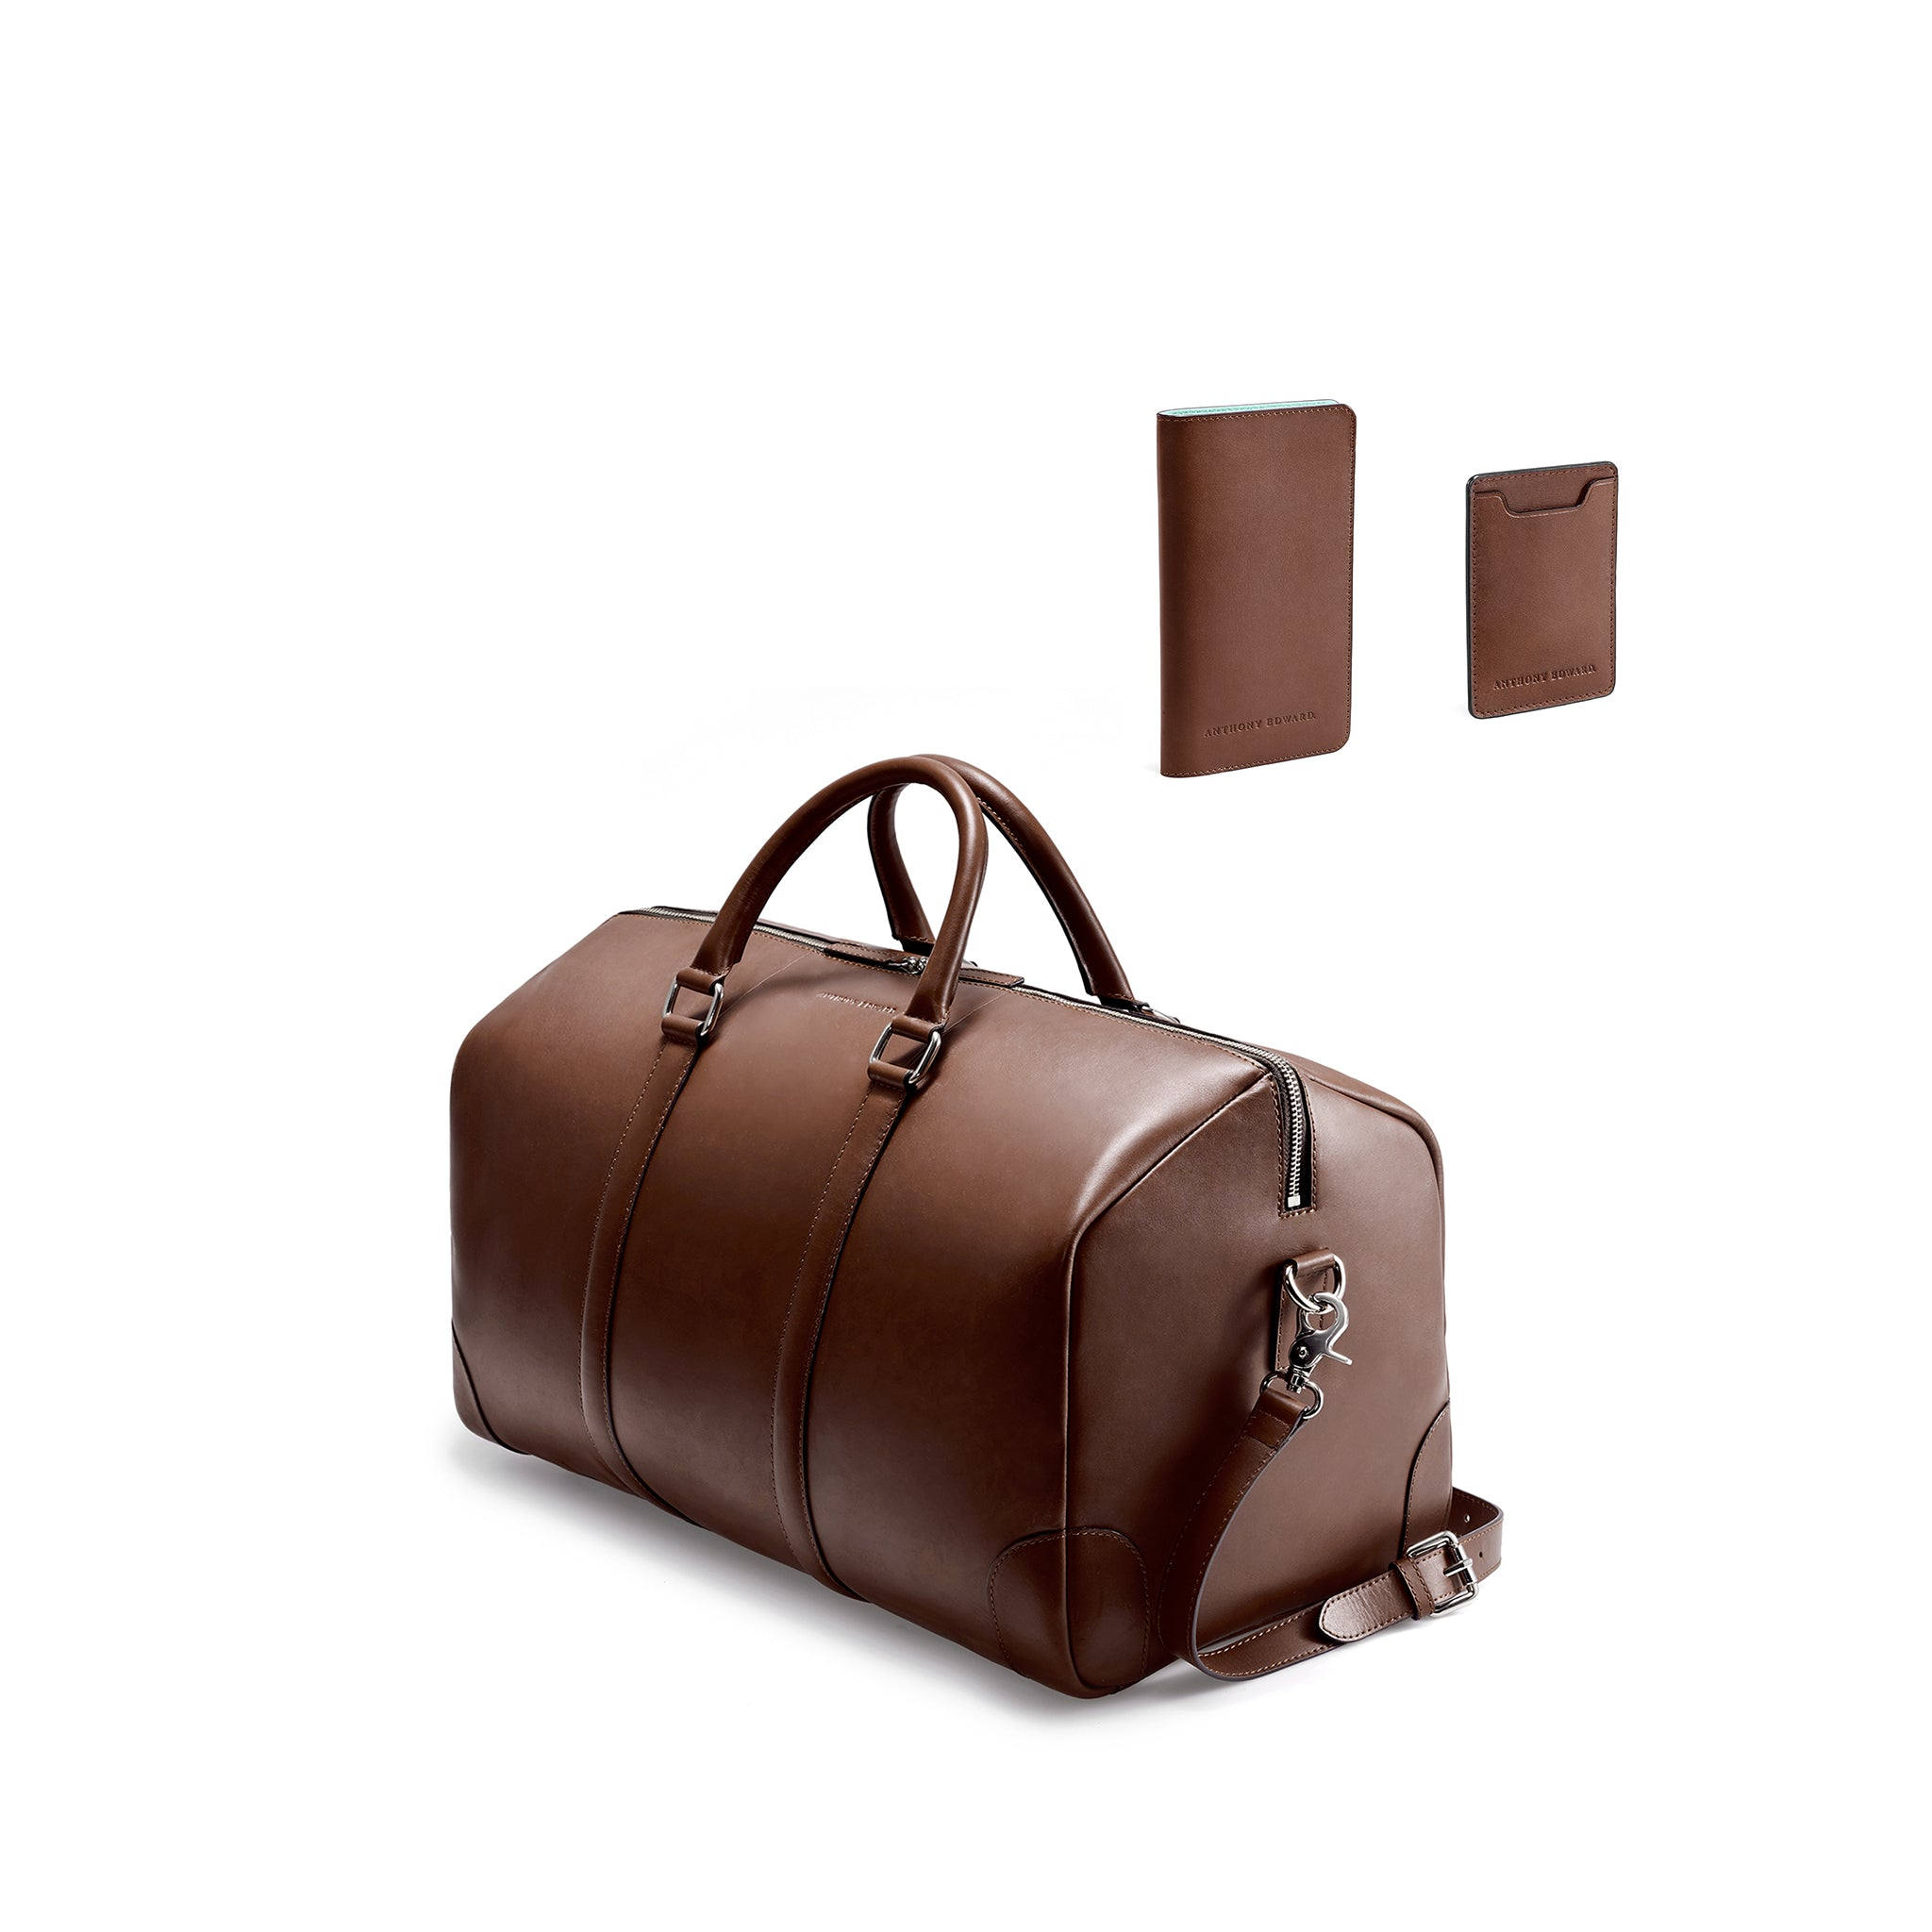 CLASSY TRAVEL SET - BROWN/CLEARLY TURQUOISE